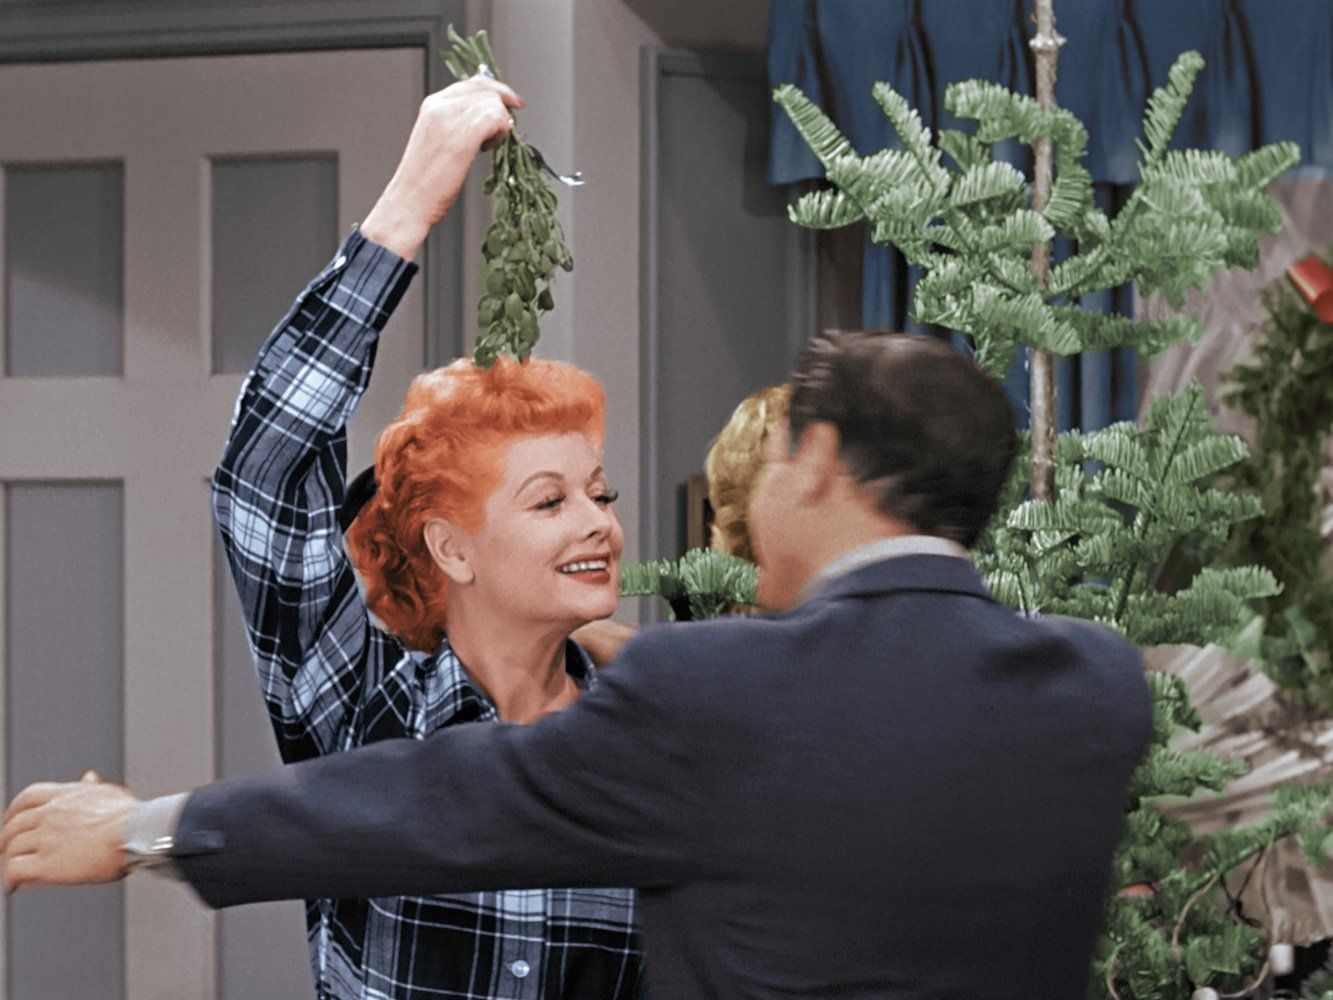 When Is The I Love Lucy Christmas Special On For 2020? New Photos from the Colorized I Love Lucy Christmas Special